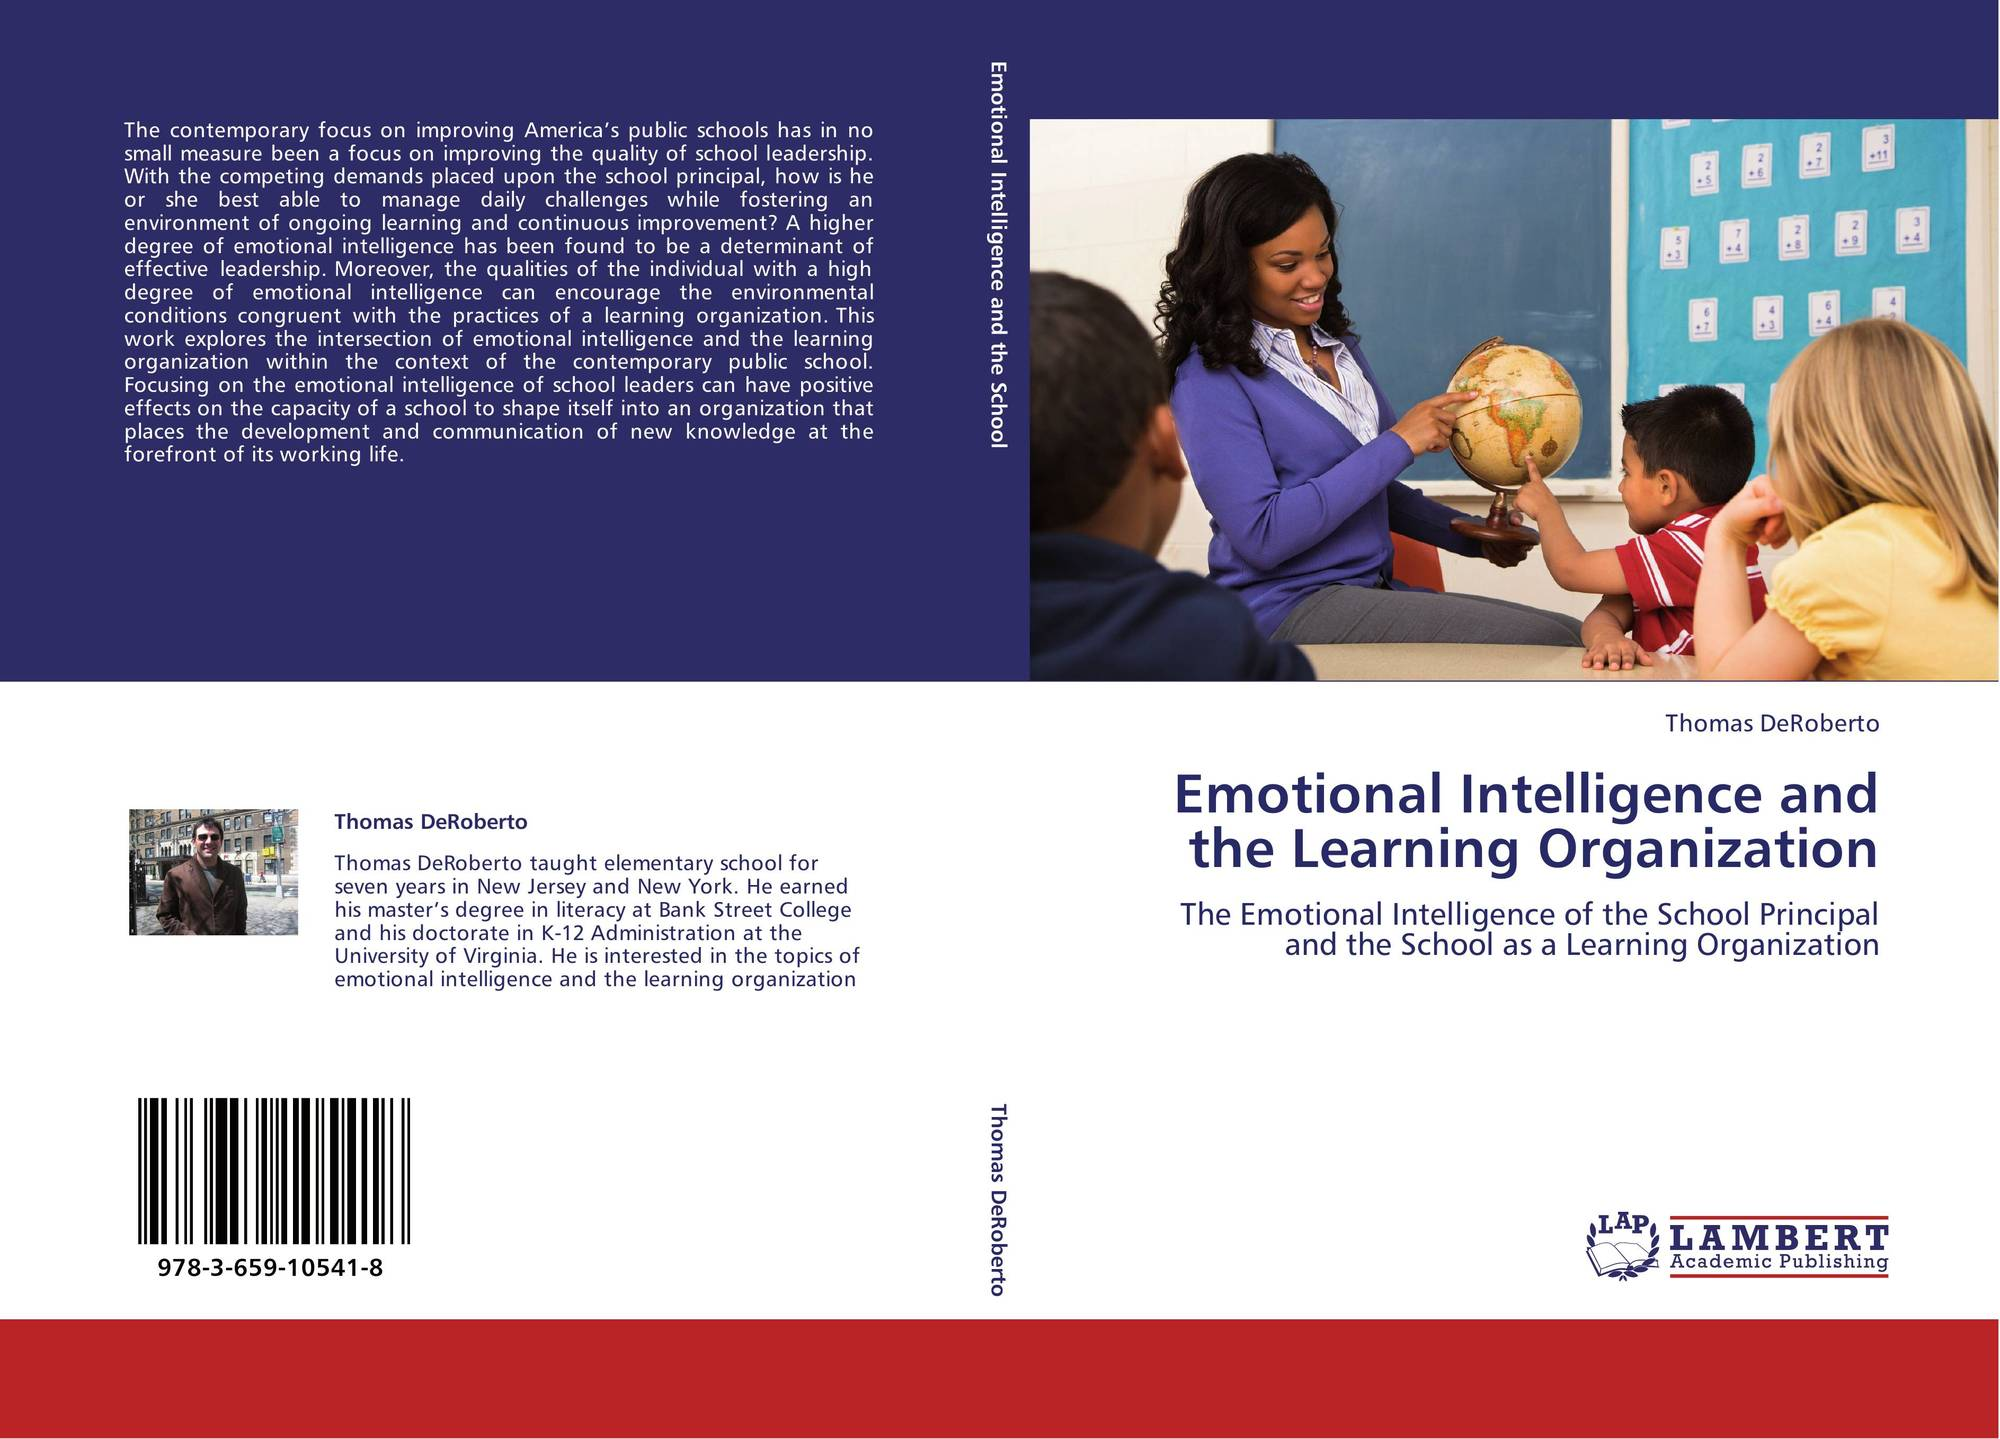 philosophy of a learning organization A learning organization is one that  authoritarian workplace philosophy to one where the  when introducing learning into an organization:.